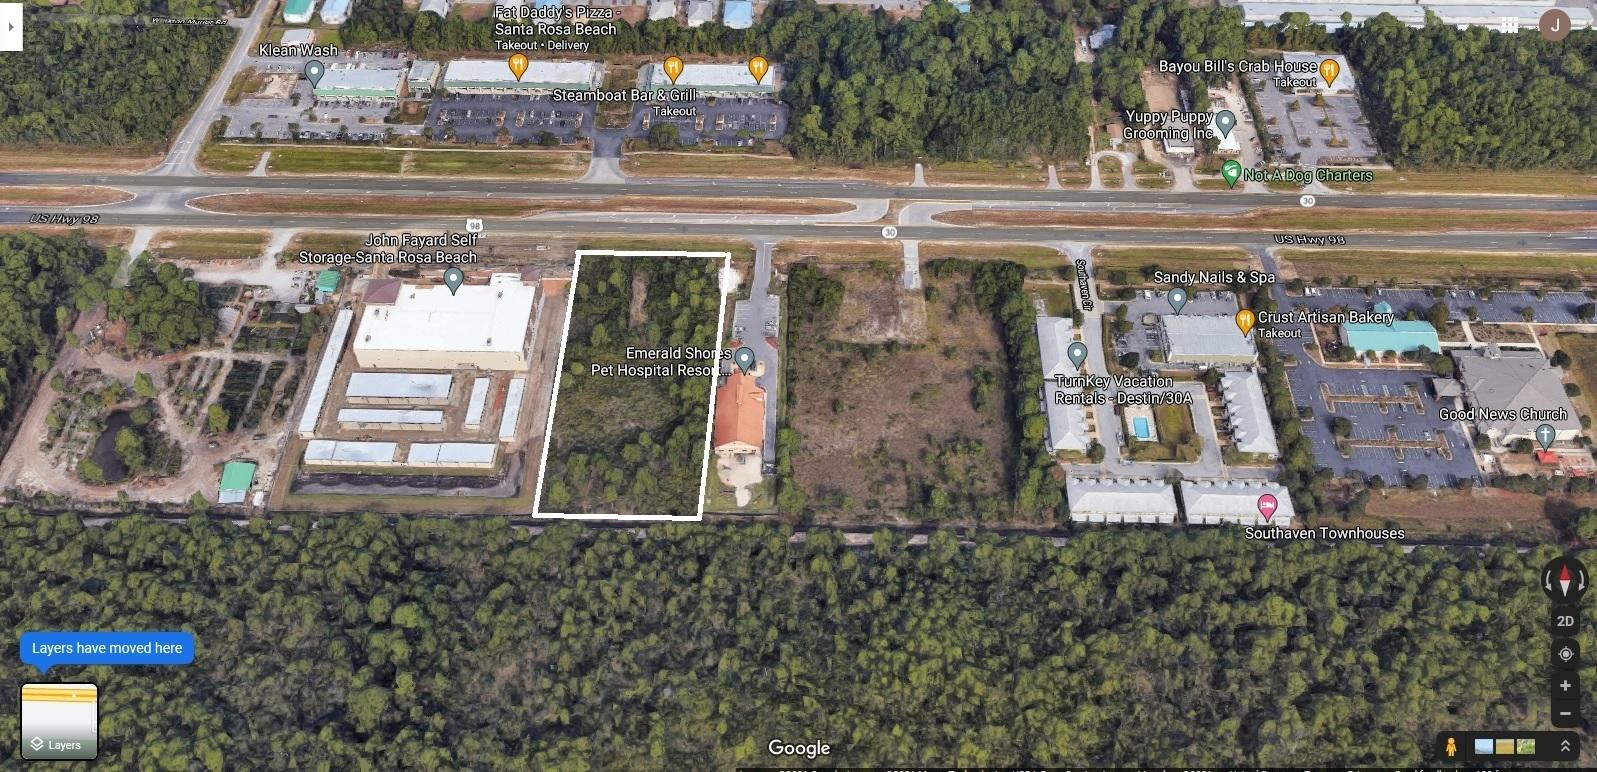 Excellent vacant land opportunity in the booming area of Santa Rosa Beach and just minutes away from the sugar-white beaches of 30A and South Walton. Zoned Village Mixed Use, the two contiguous parcels are approximately 2.343 acres per Walton county Property Appraisers site. The 0.56 acre wetland area is eligible for fill through the Nationwide Permit #39 giving a full development opportunity on this prime 2.343 acre site. User to verify all data for its intended use.